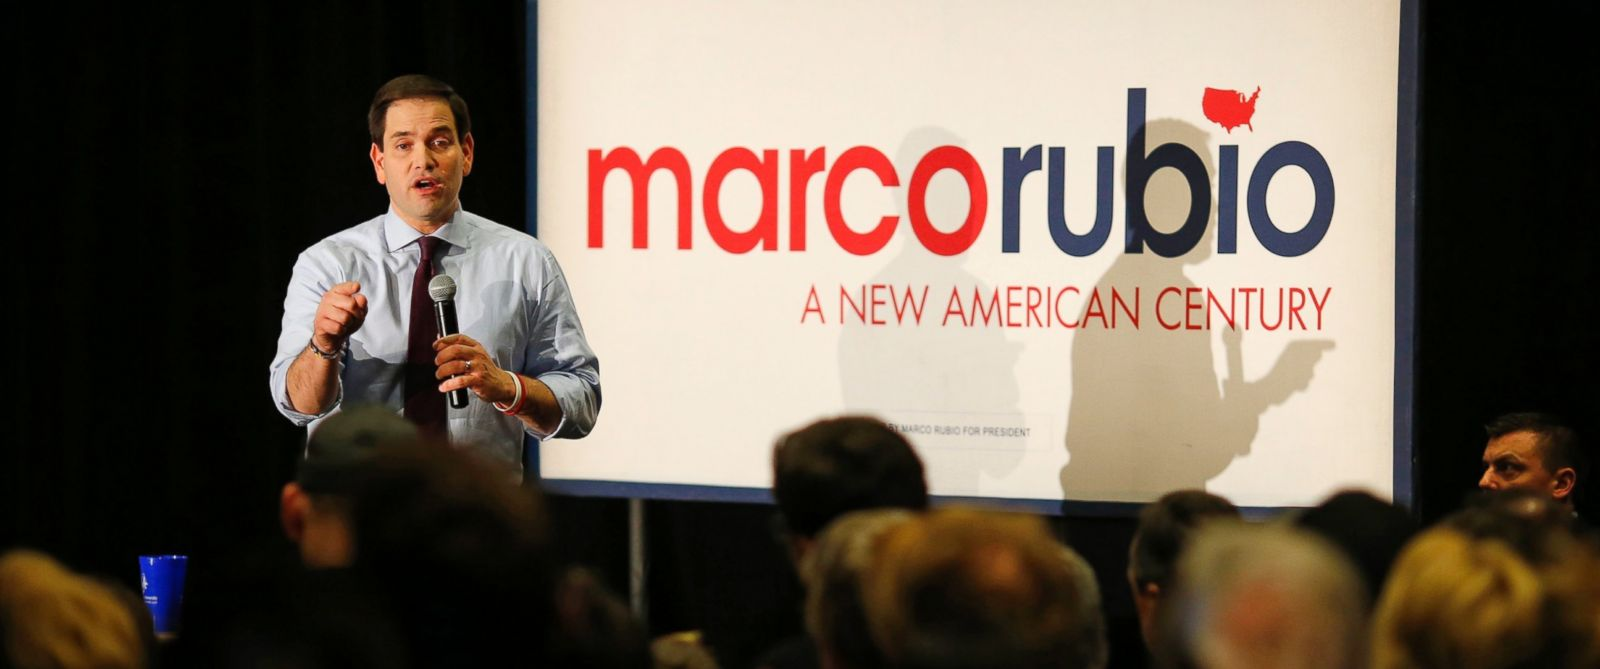 PHOTO: Republican presidential candidate Marco Rubio speaks at St. Ambrose University in Davenport, Iowa, Jan. 31, 2016.